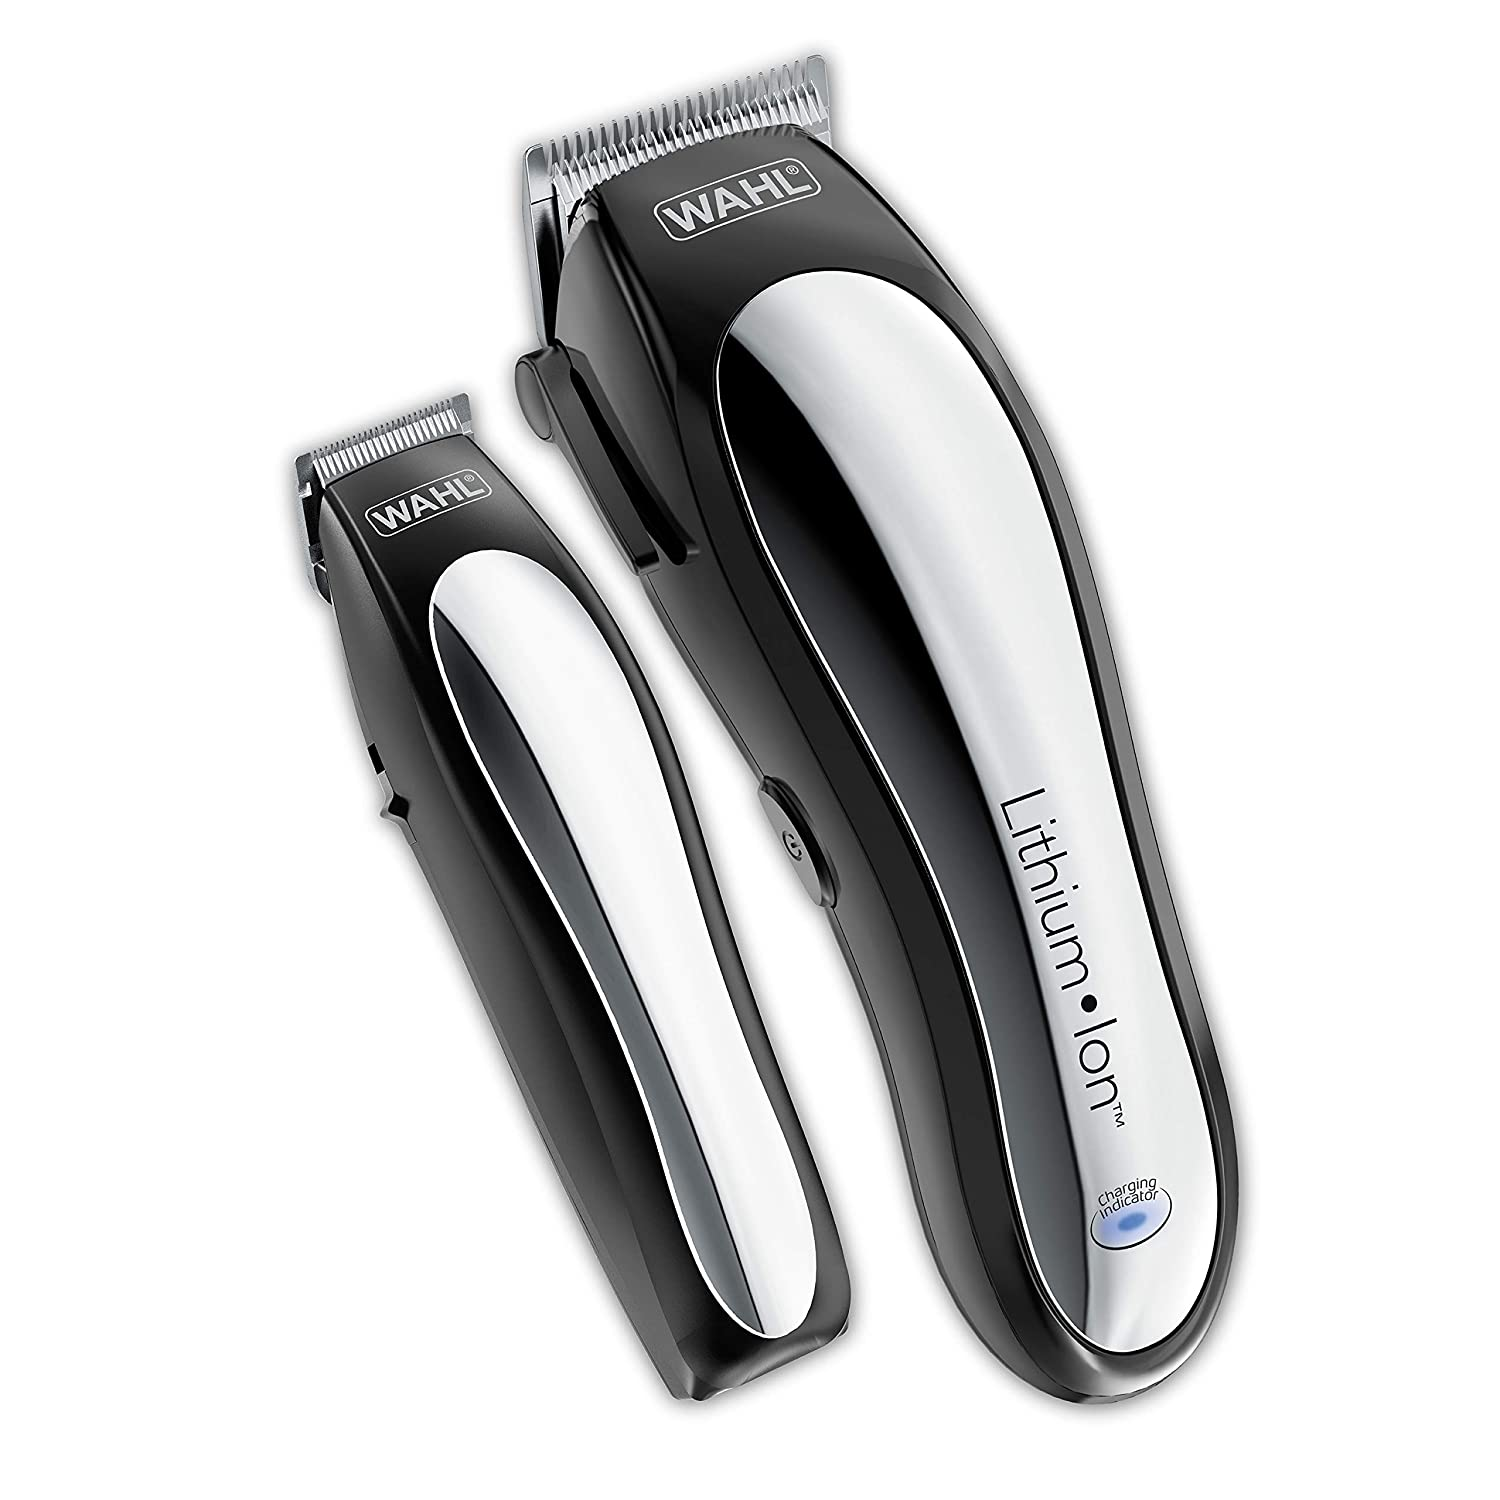 wahl 79600-2101 lithium ion clippers